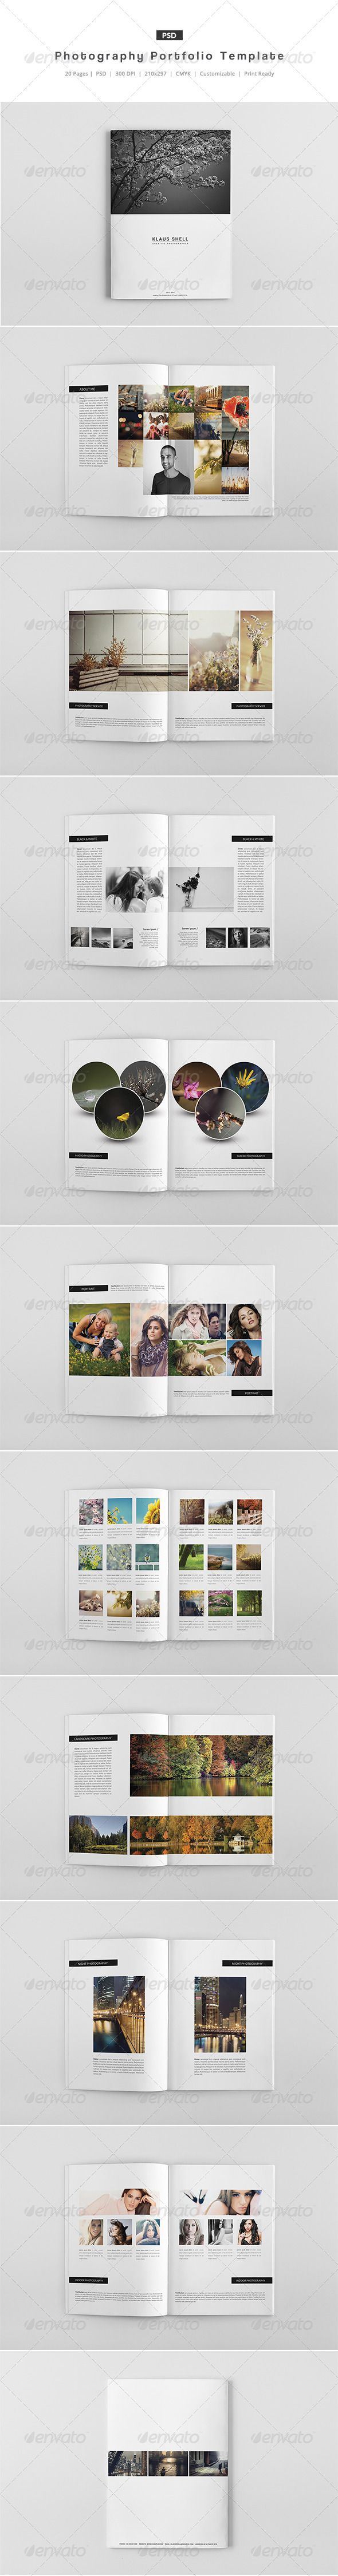 Photography Portfolio Template Photography Portfolio Brochures - Photography portfolio template